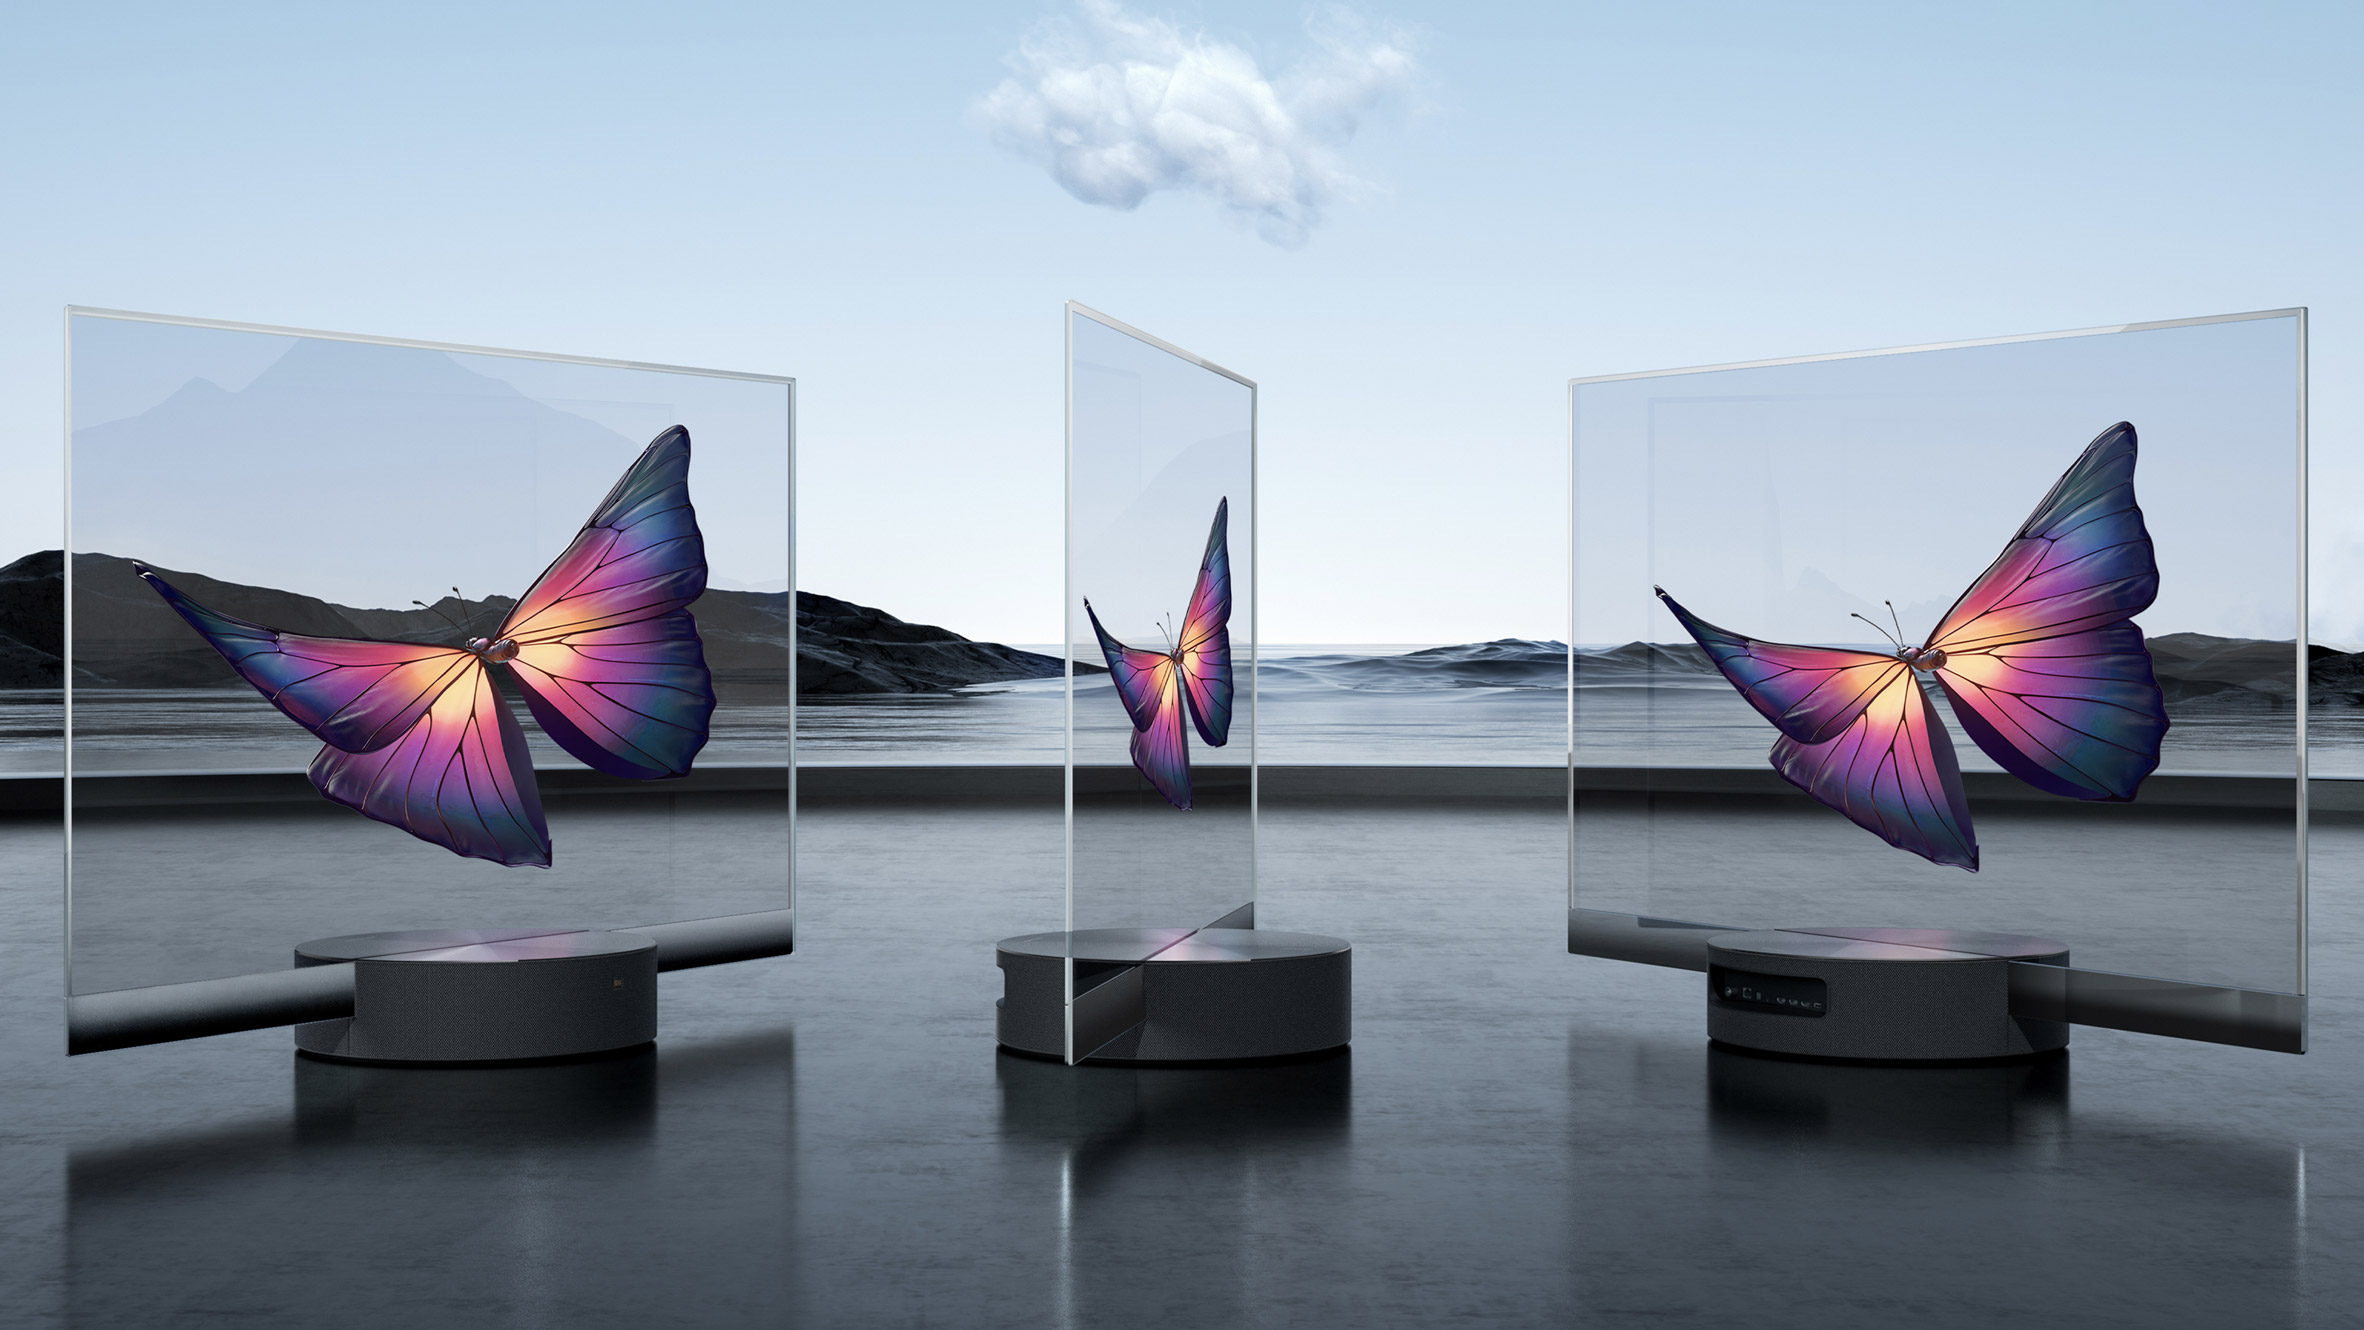 Xiaomi launches world's first mass-produced transparent TV